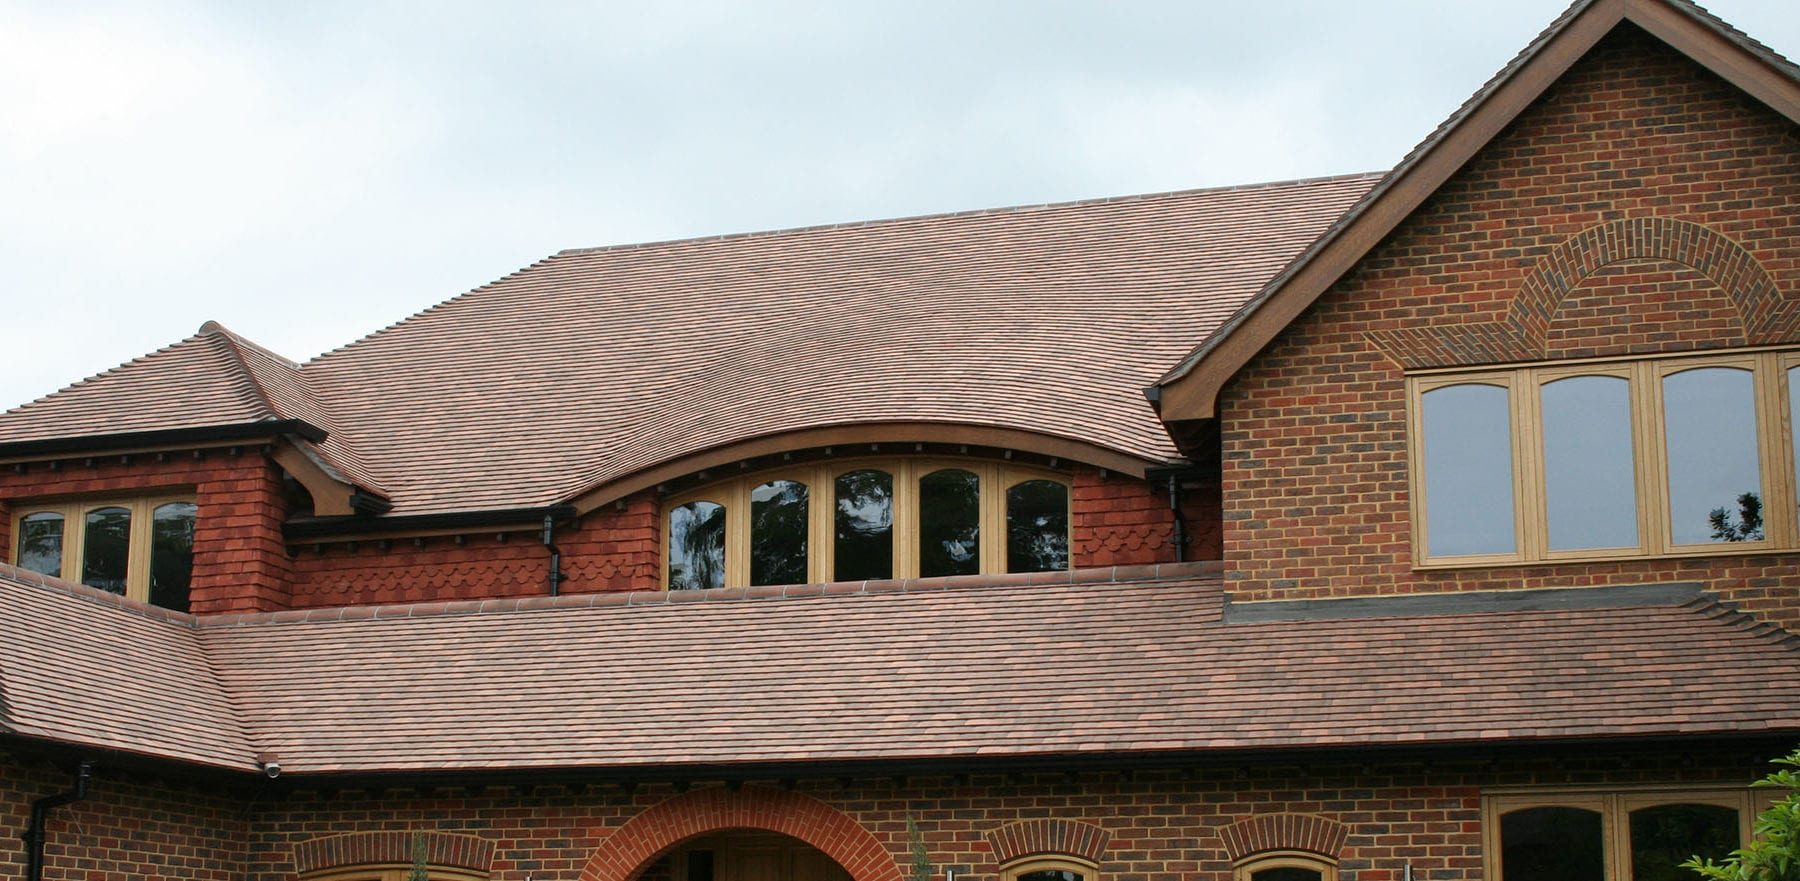 Lifestiles - Machine Made French Collection Roof Tiles - Various, England 2